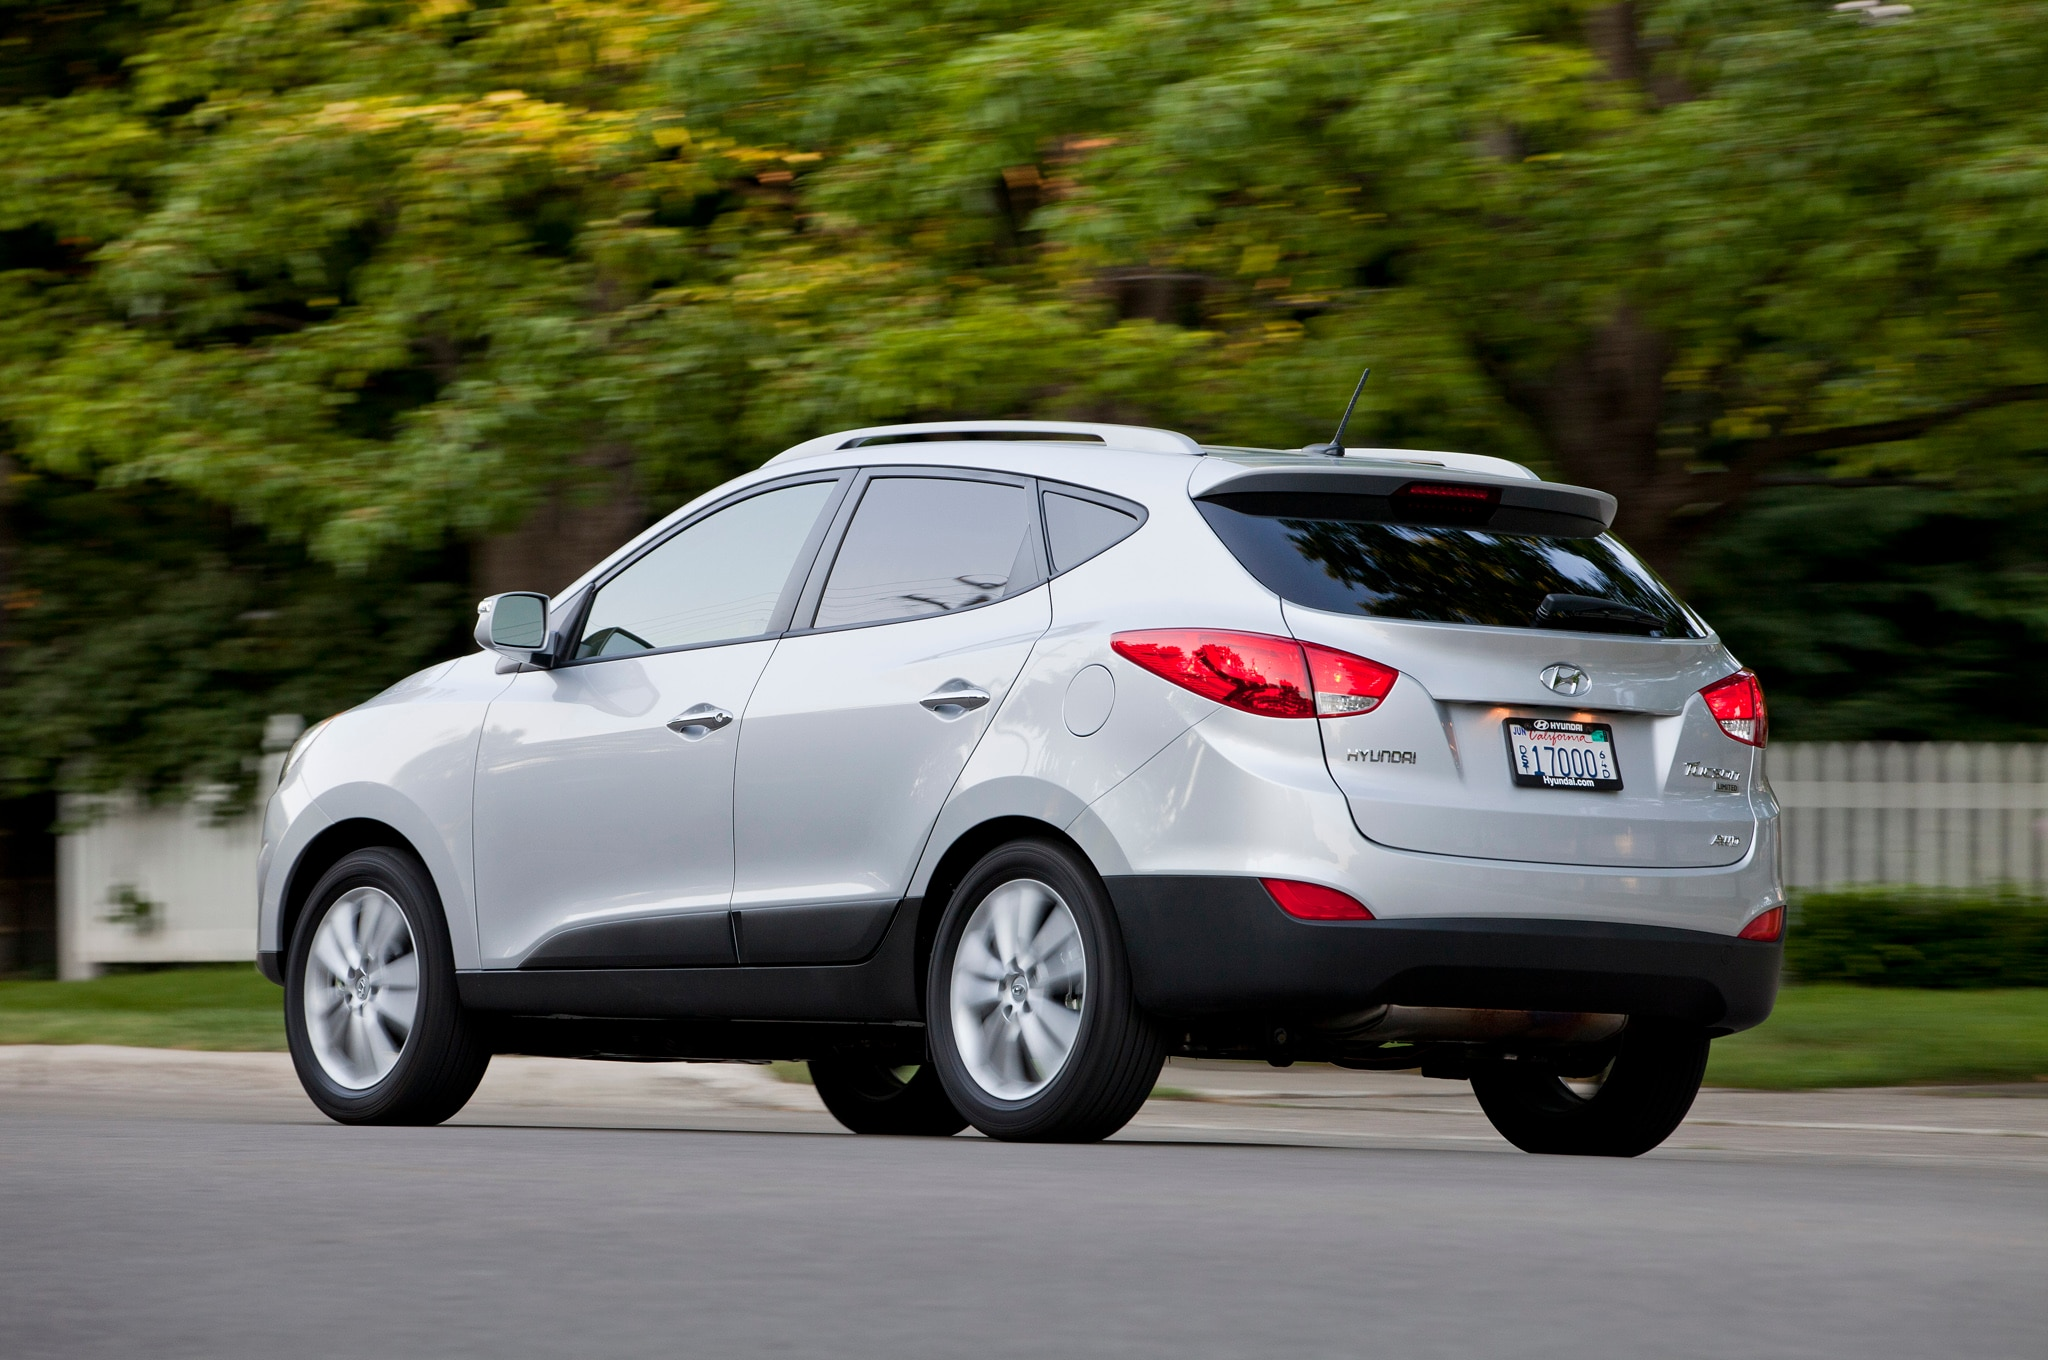 2014 hyundai tucson adds direct injection engines more equipment. Black Bedroom Furniture Sets. Home Design Ideas